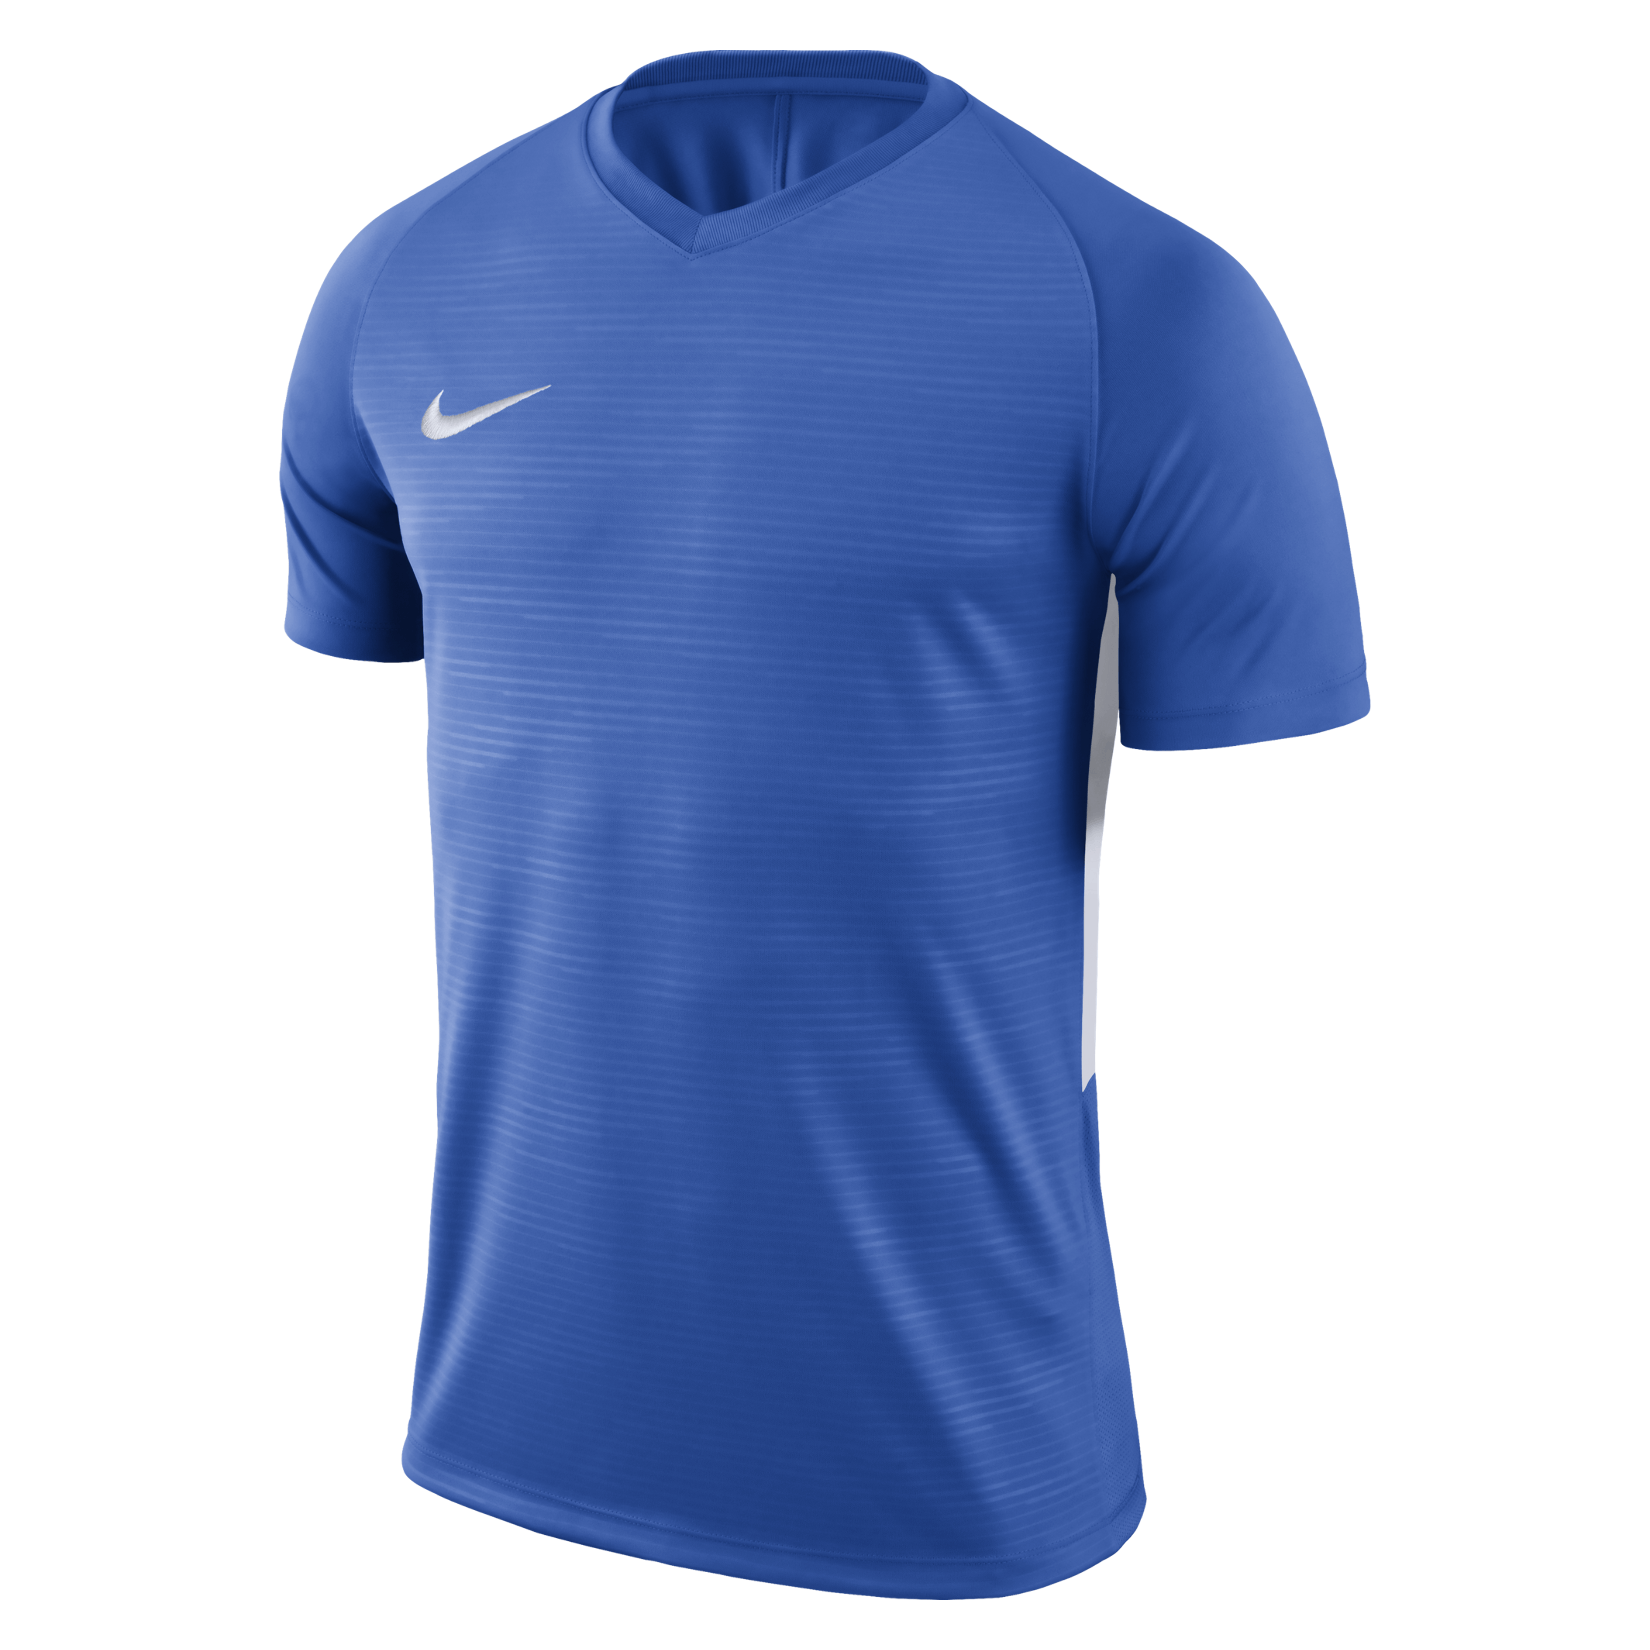 Nike Tiempo Premier Short Sleeve Shirt Royal Blue-Royal Blue-White-White